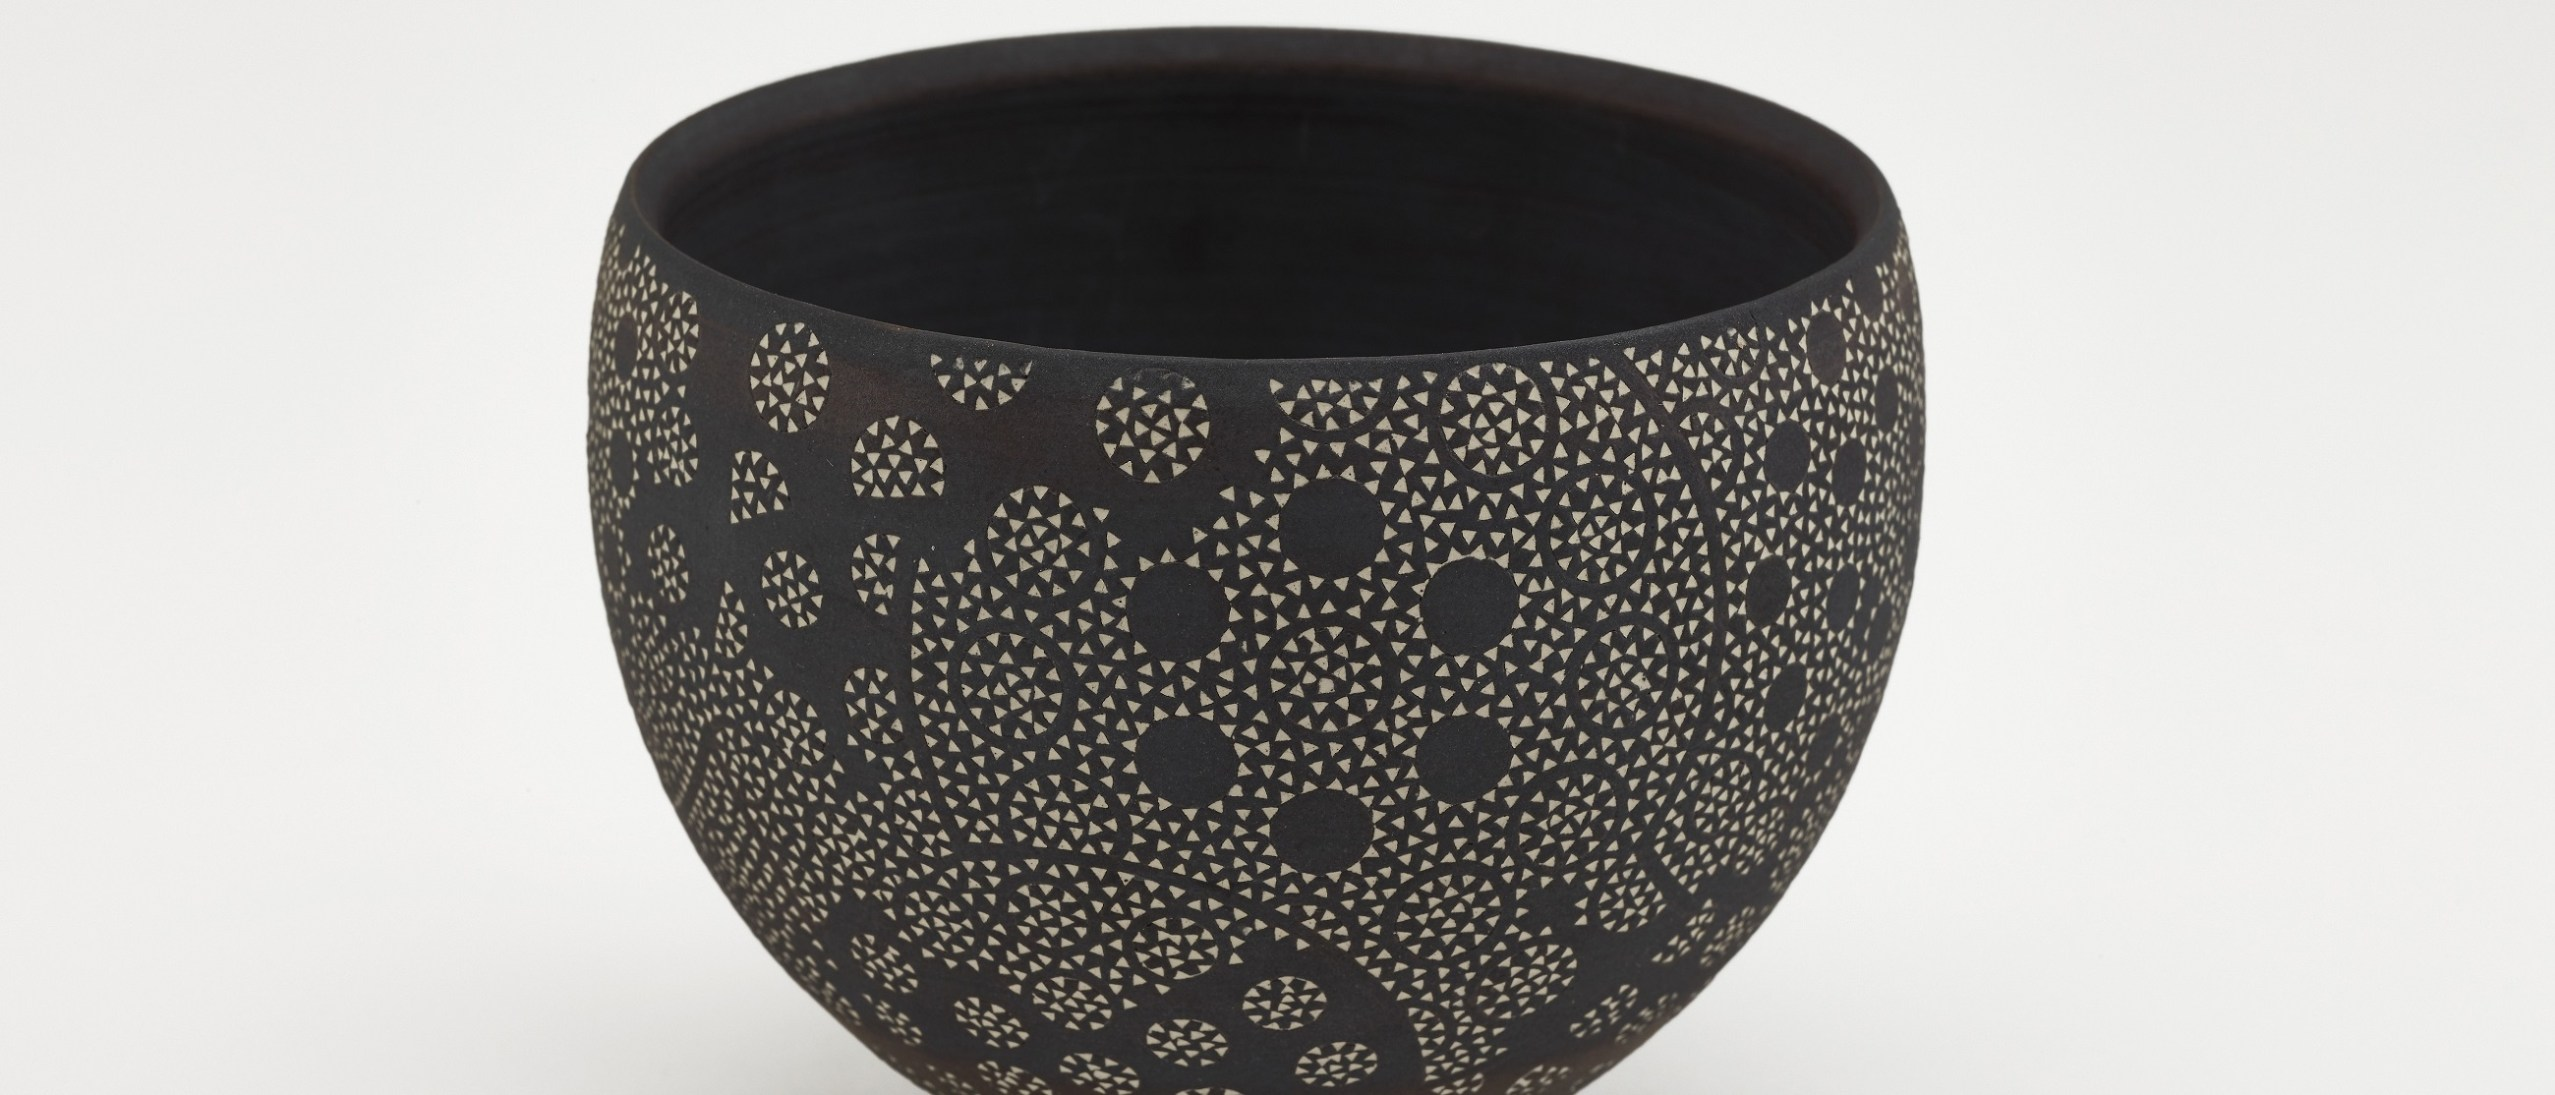 Photo of Bowl; Kitamura Junko (b. 1956); Japan, Kyoto, 1995; Black stoneware with white slip inlay; Gift of Halsey and Alice North; Arthur M. Sackler Gallery S2017.22